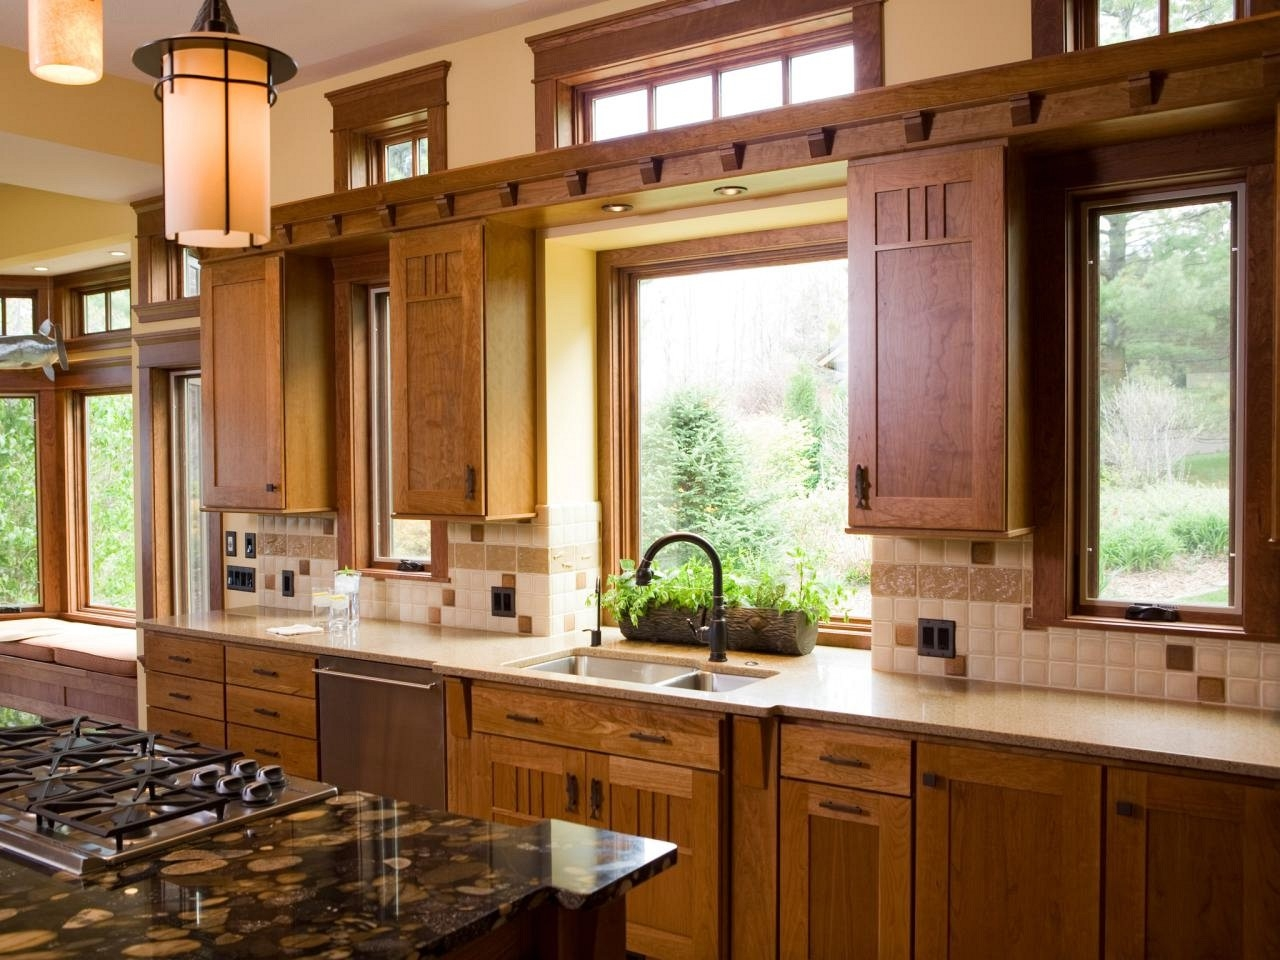 Decorating A Kitchen Without Windows